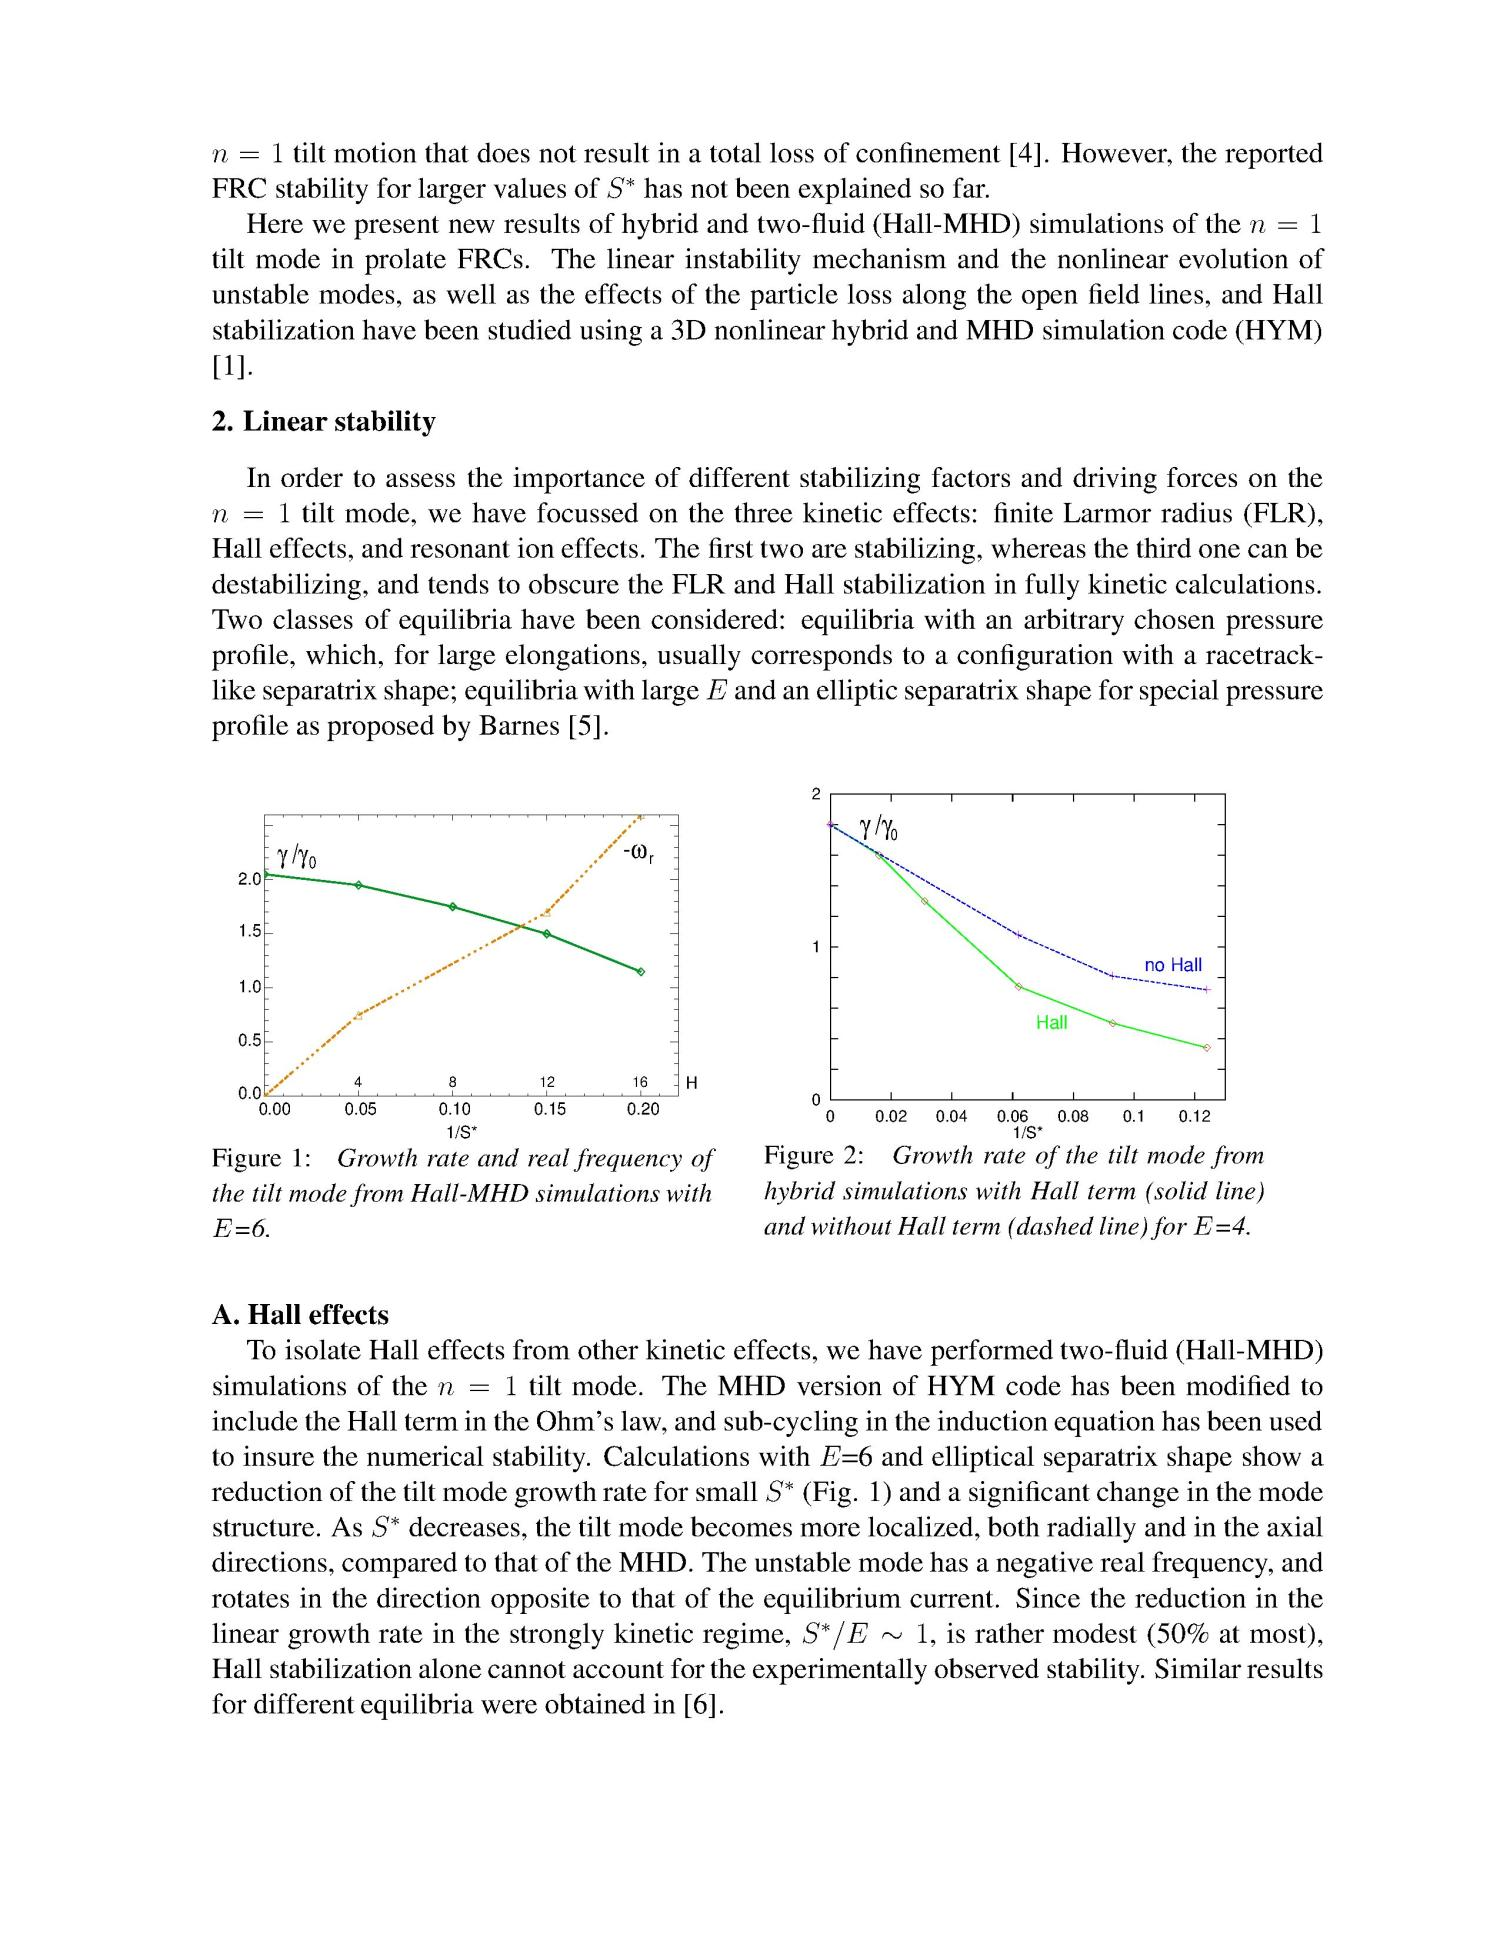 Nonlinear and Non-ideal Effects on FRC Stability                                                                                                      [Sequence #]: 4 of 10